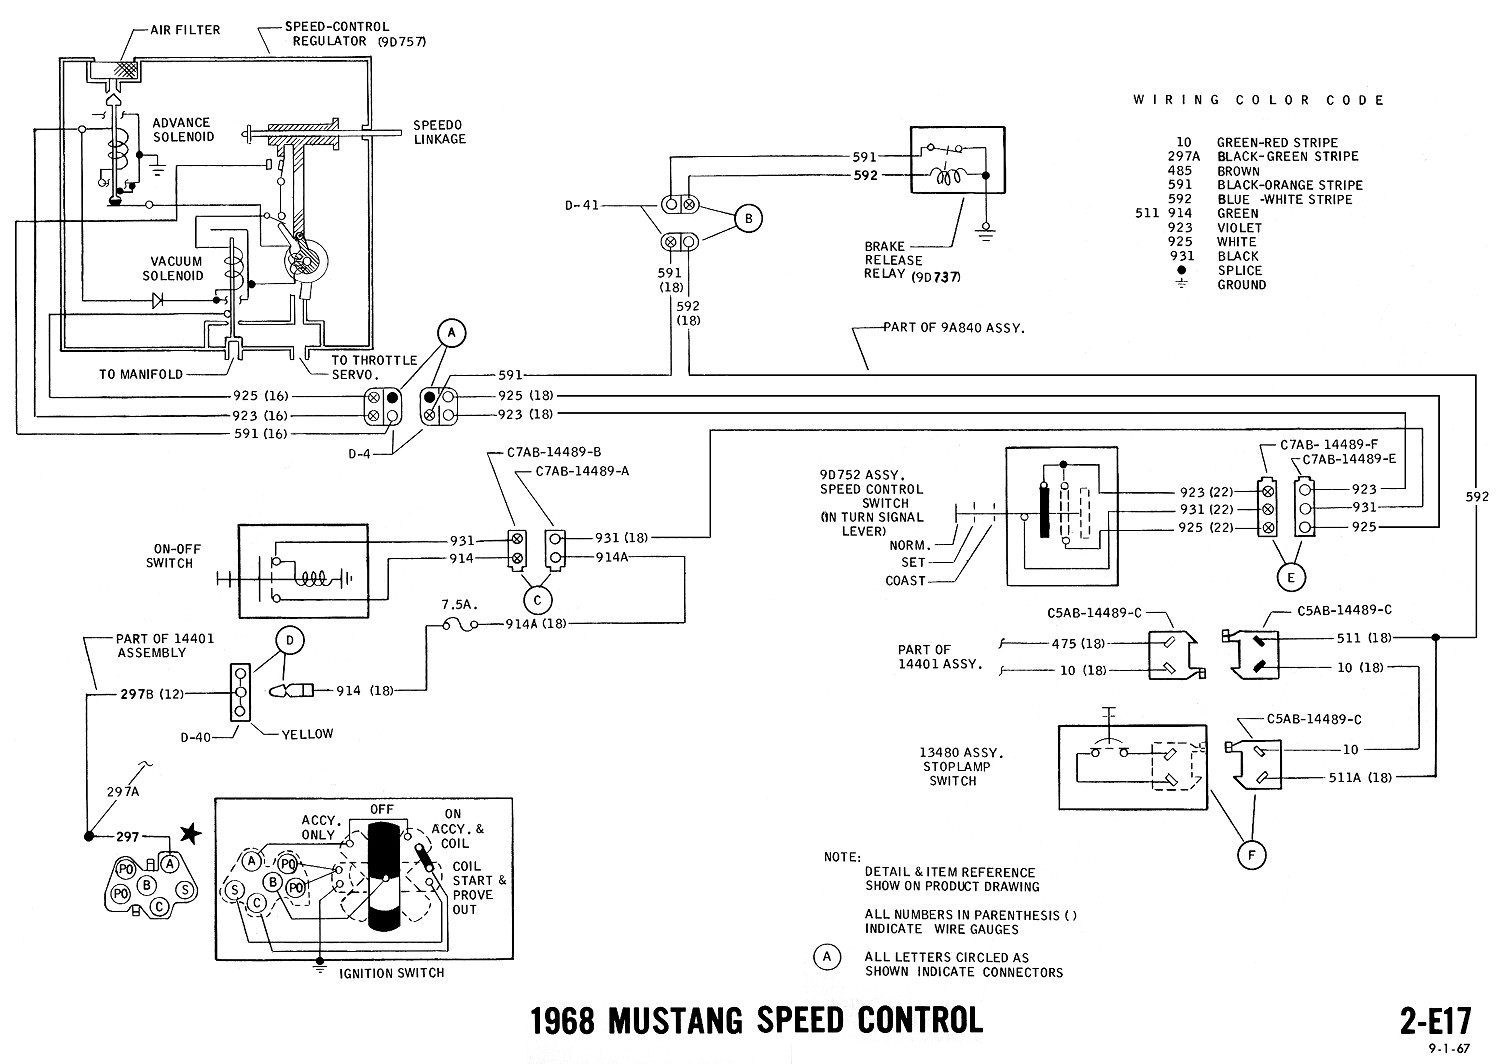 1968 Mustang Wiring Diagrams Evolving Software Coil Diagram Speed Control